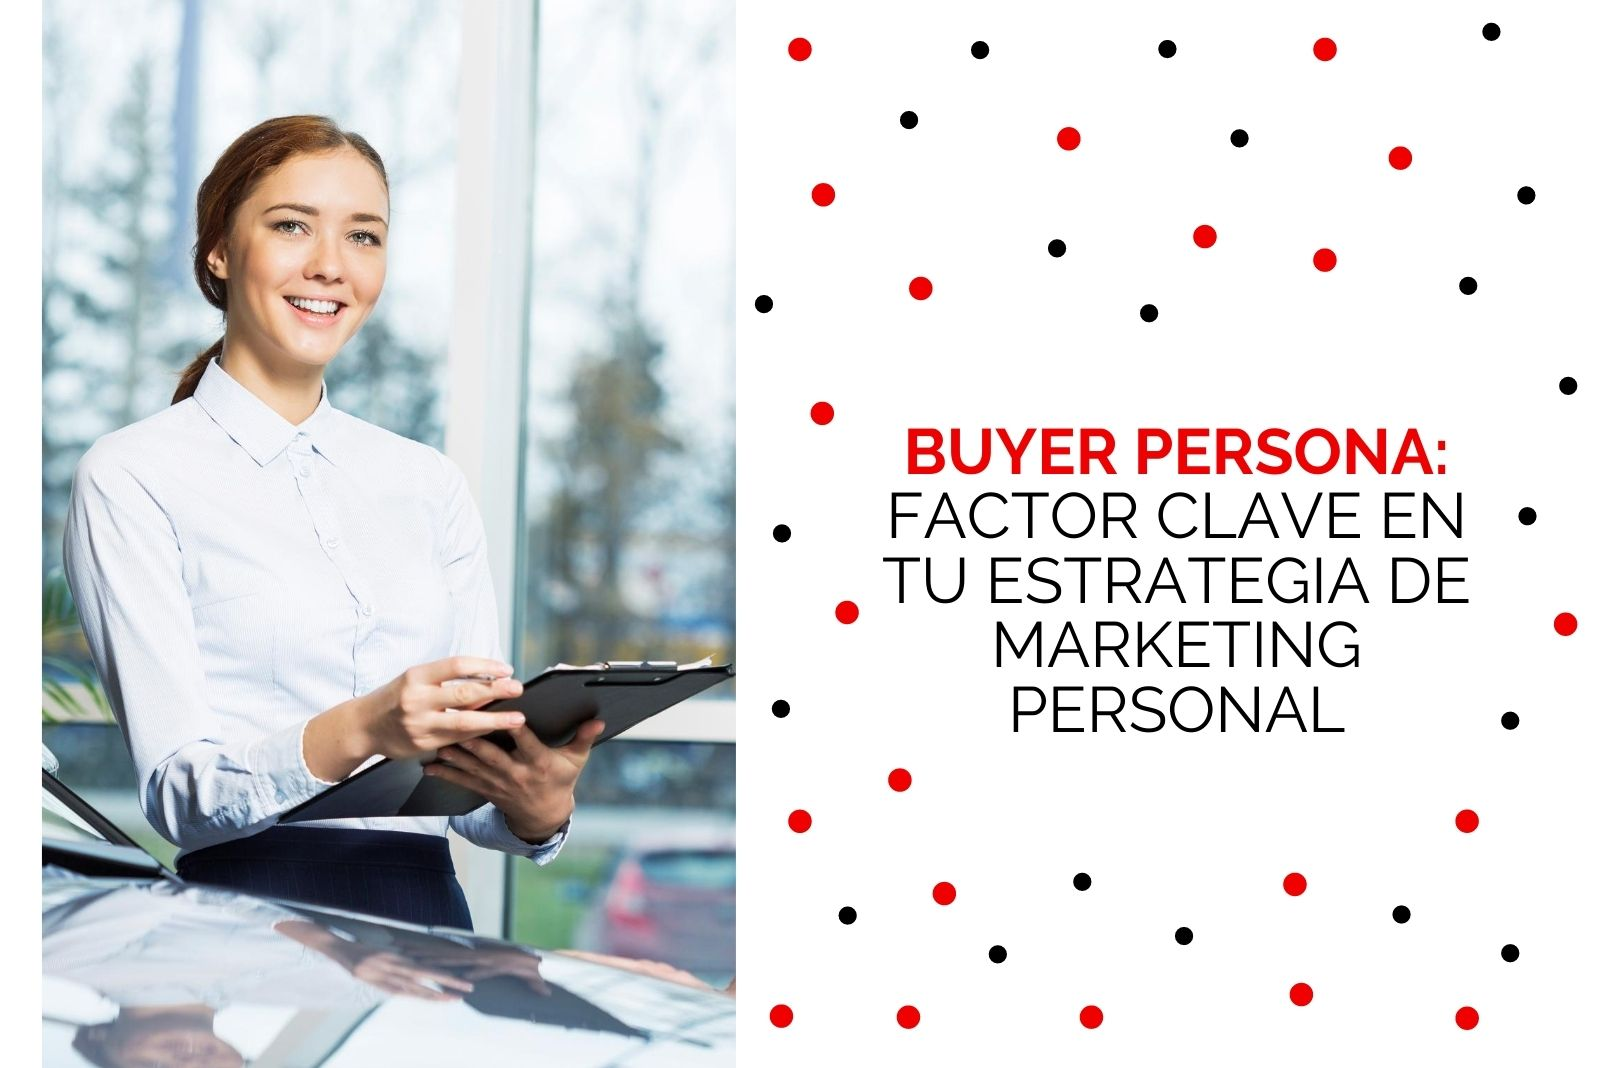 Hector Jimenez - Buyer Persona Como Factor Clave En Tu Estrategia De Marketing Personal - 1